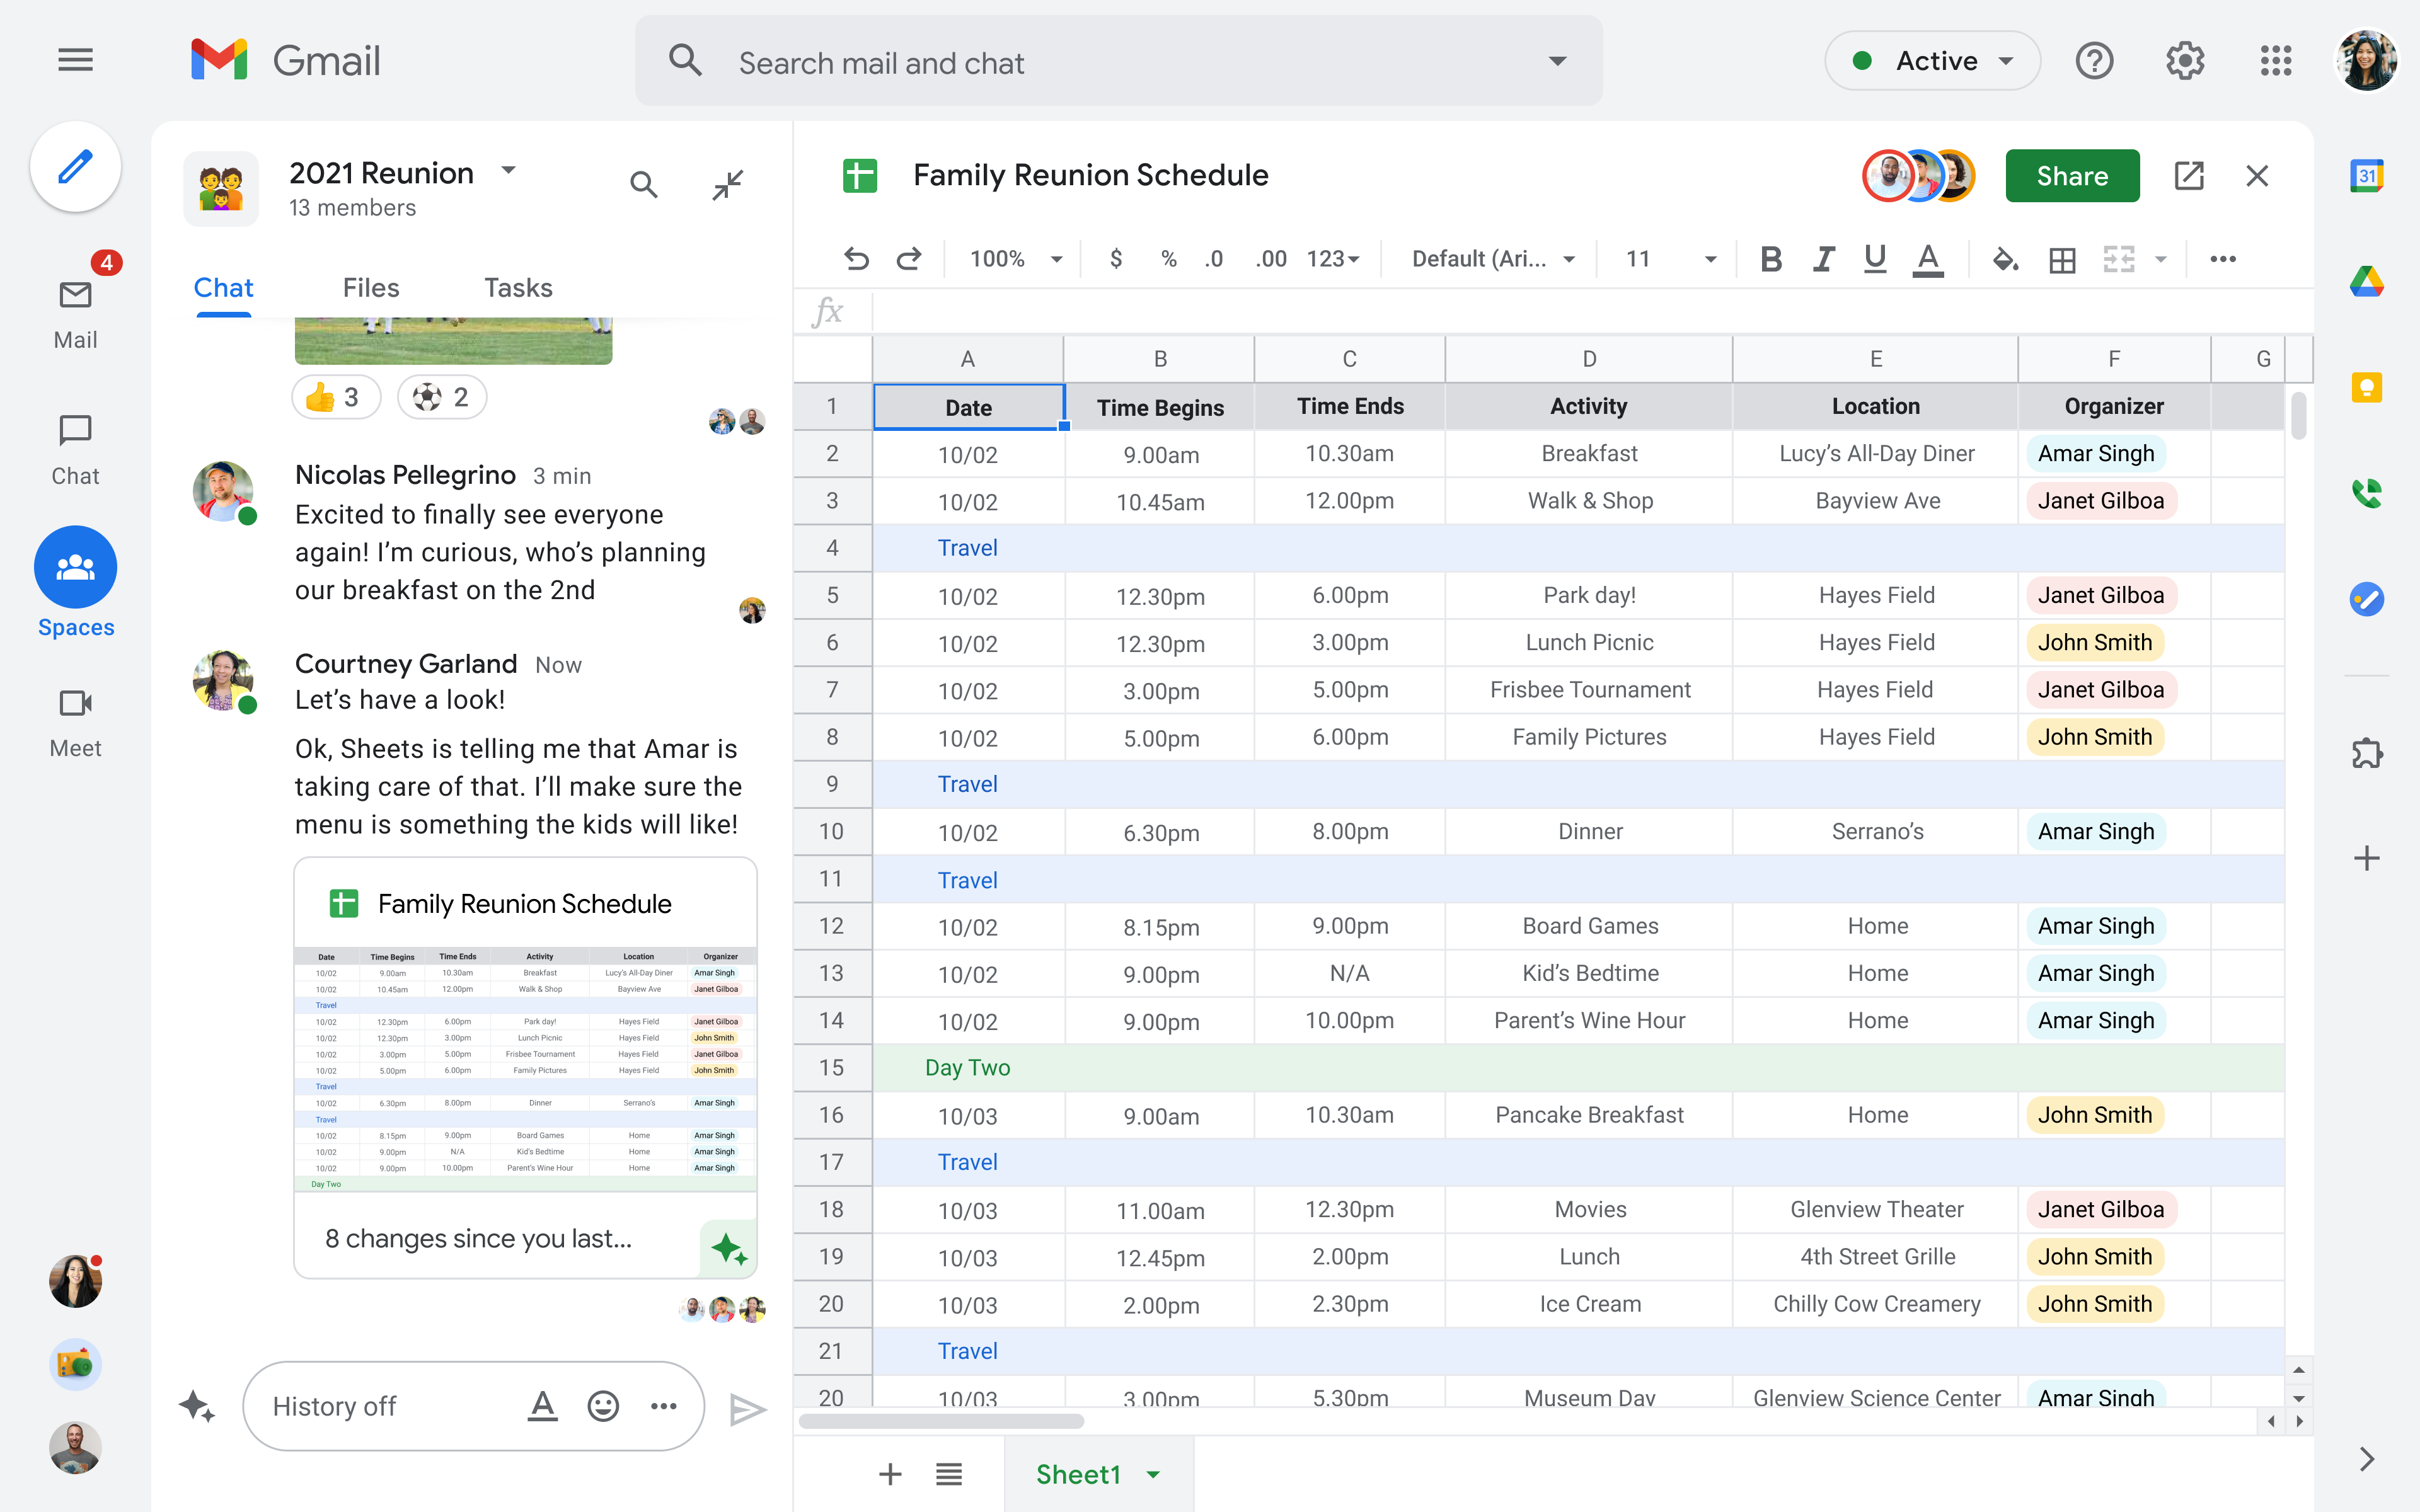 Google's Workplace suite is now free and available to anyone